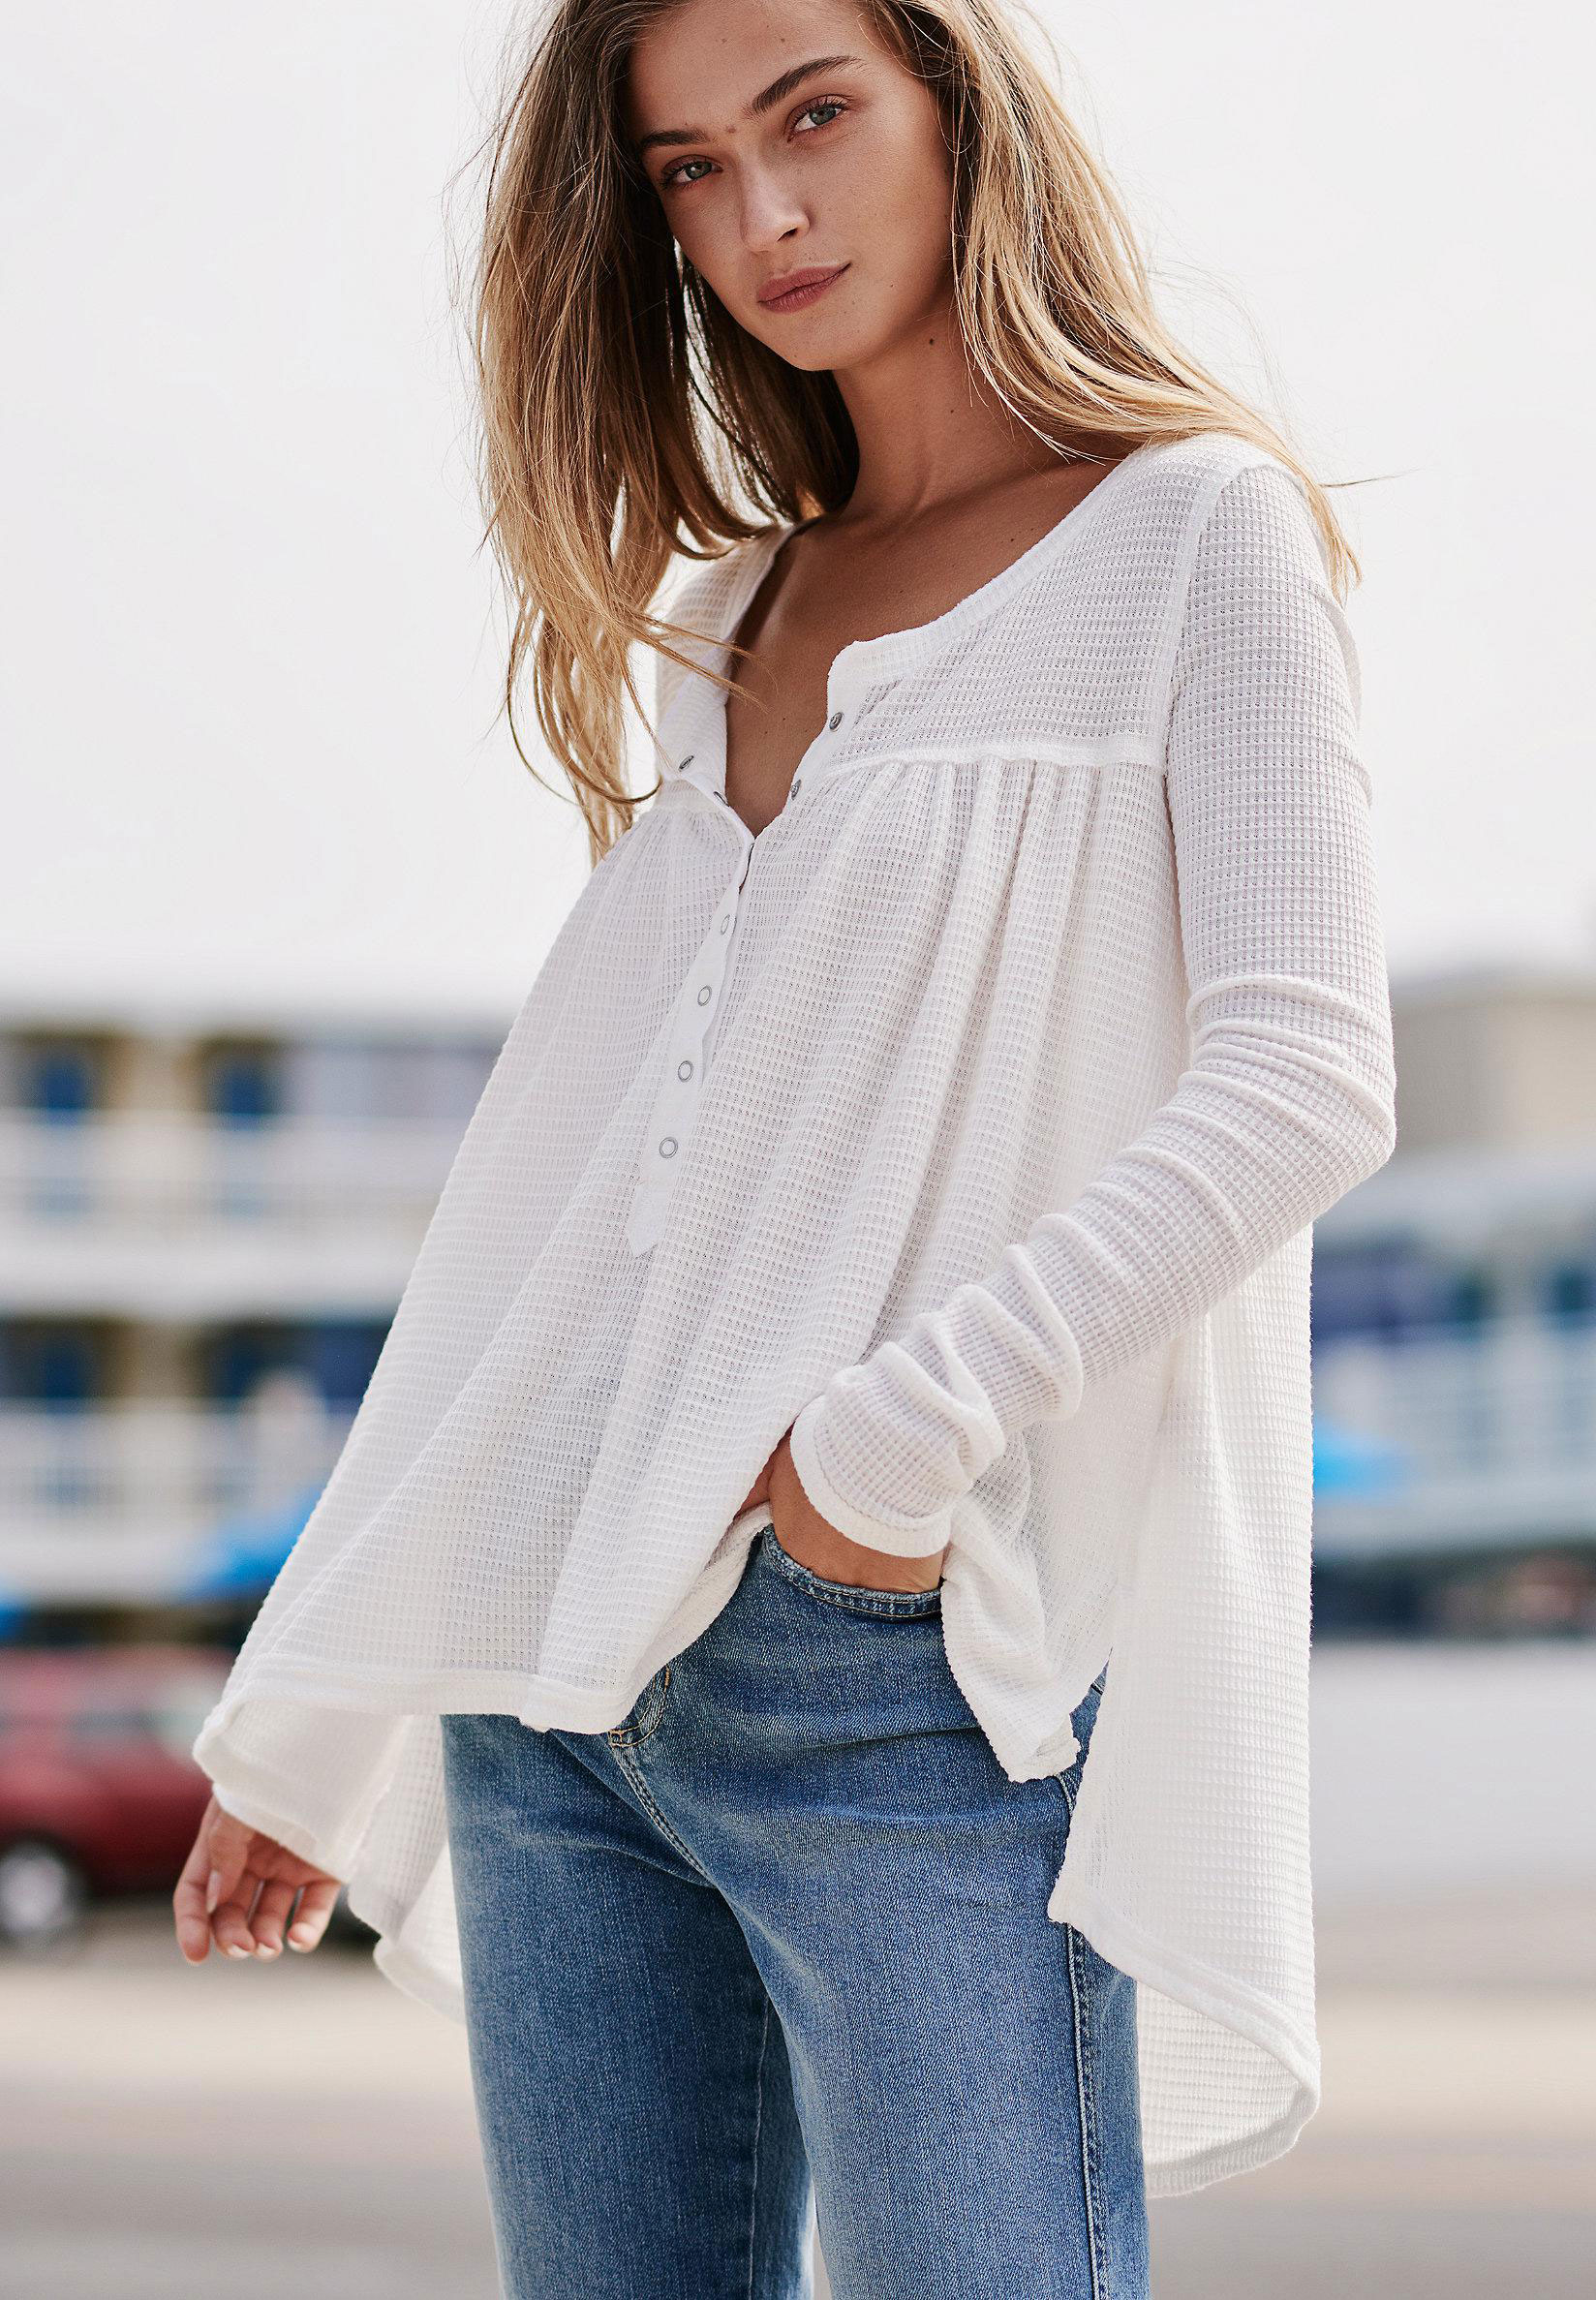 Free People We The Free Kai Henley - Weekly Picks by North Carolina style blogger Glitter, Inc.